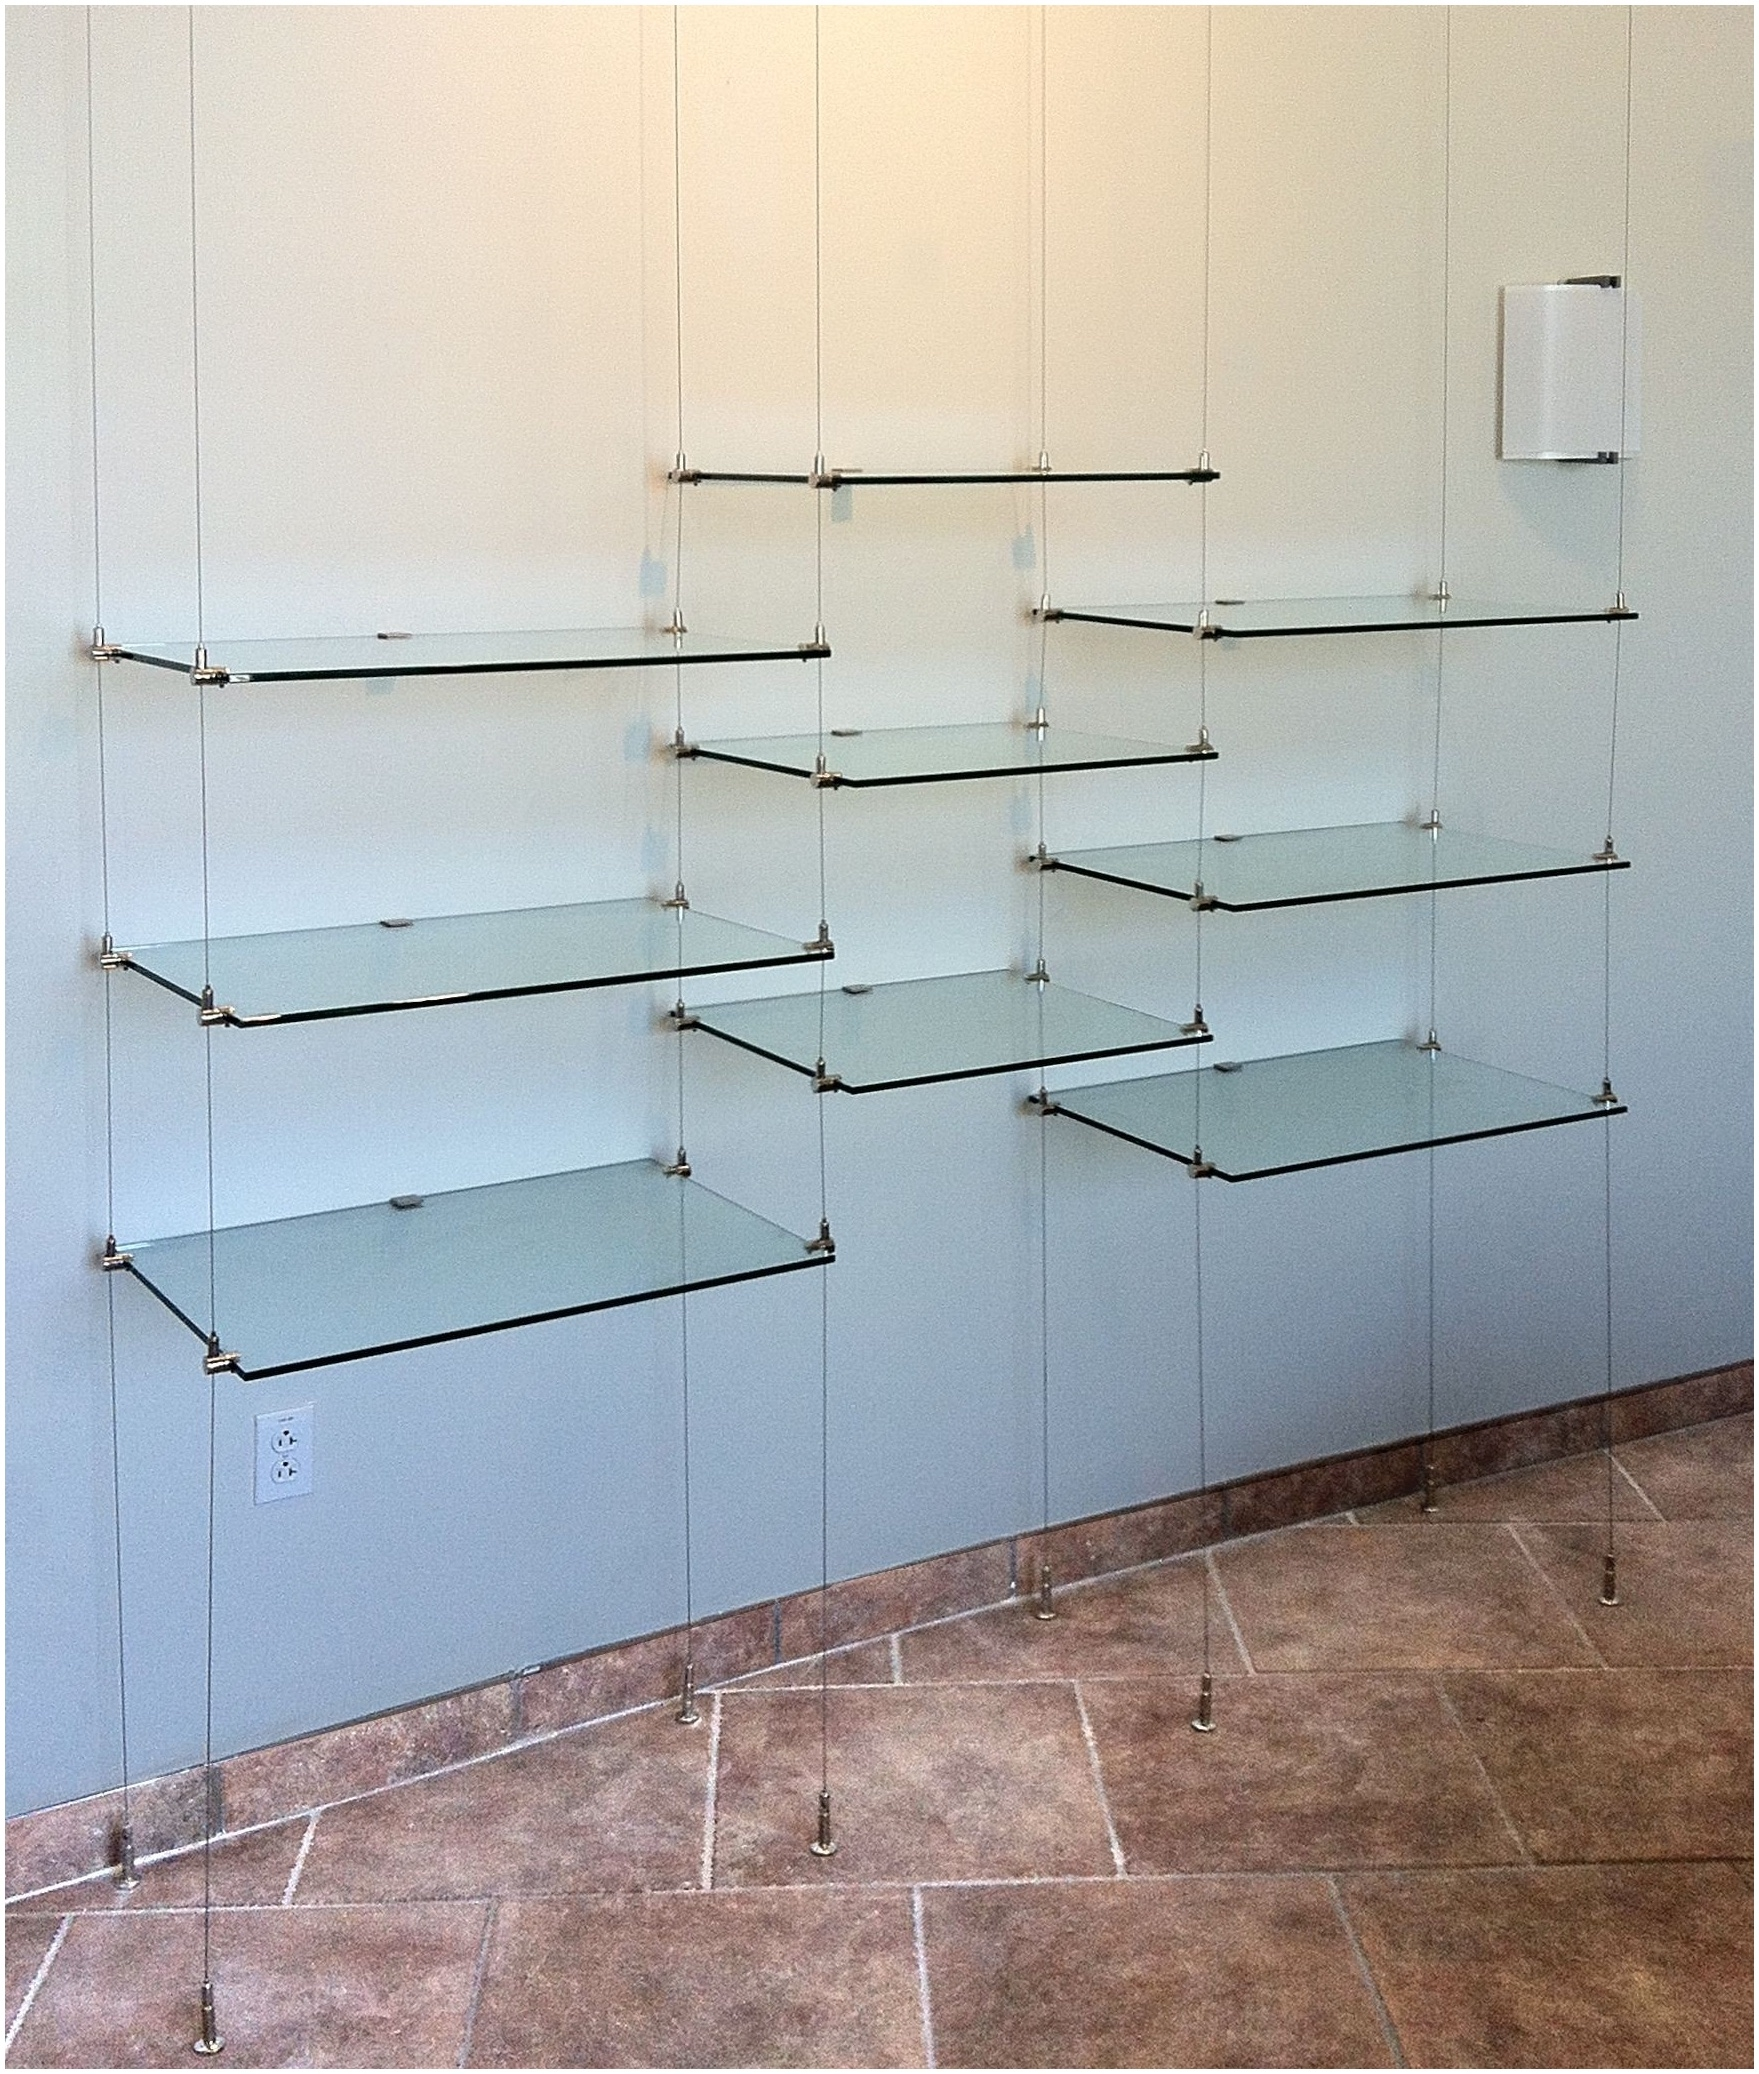 Suspended Glass Shelving Systems Design Modern Shelf Storage And Regarding Cable Suspended Glass Shelving (View 5 of 15)